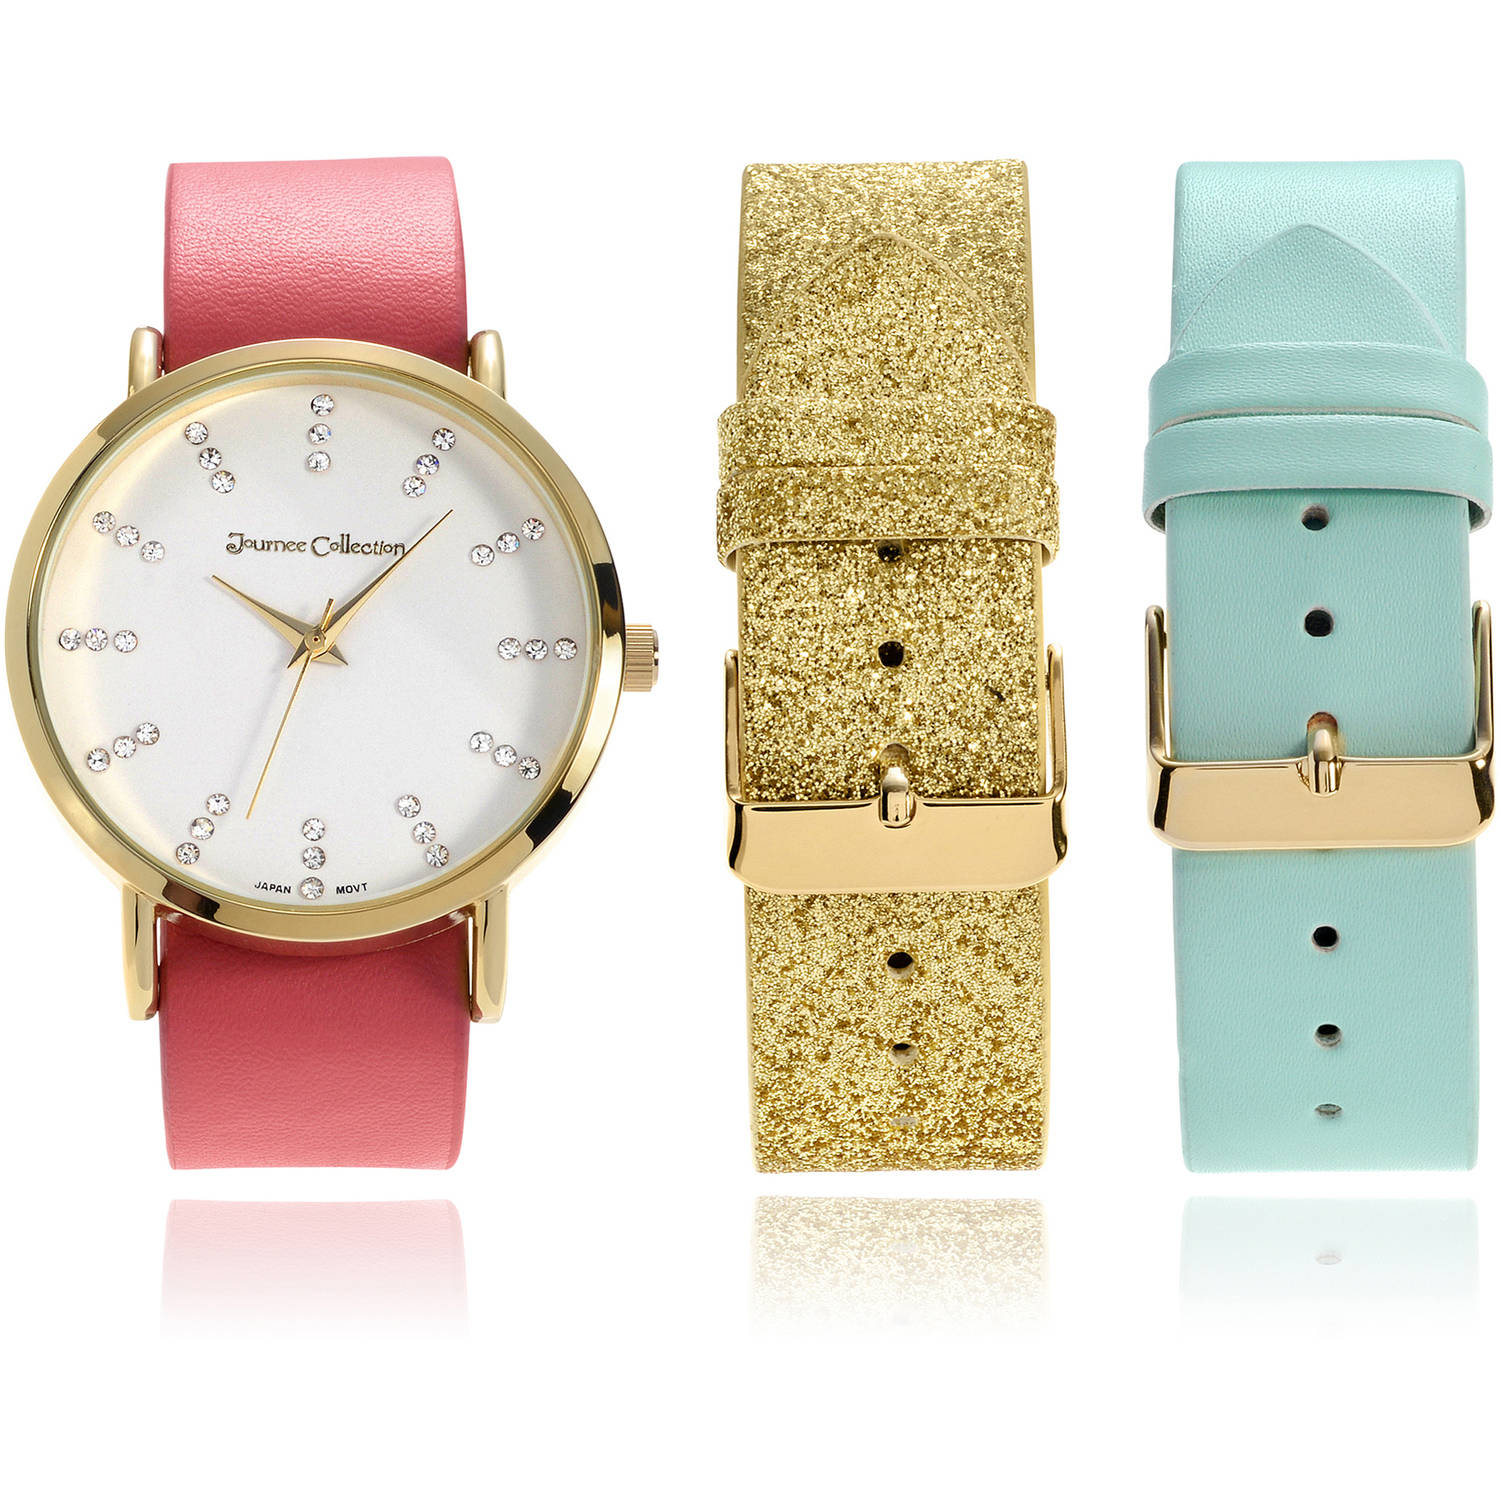 Journee Collection Women's Rhinestone Interchangeable Leather Strap Fashion Watch, Gold